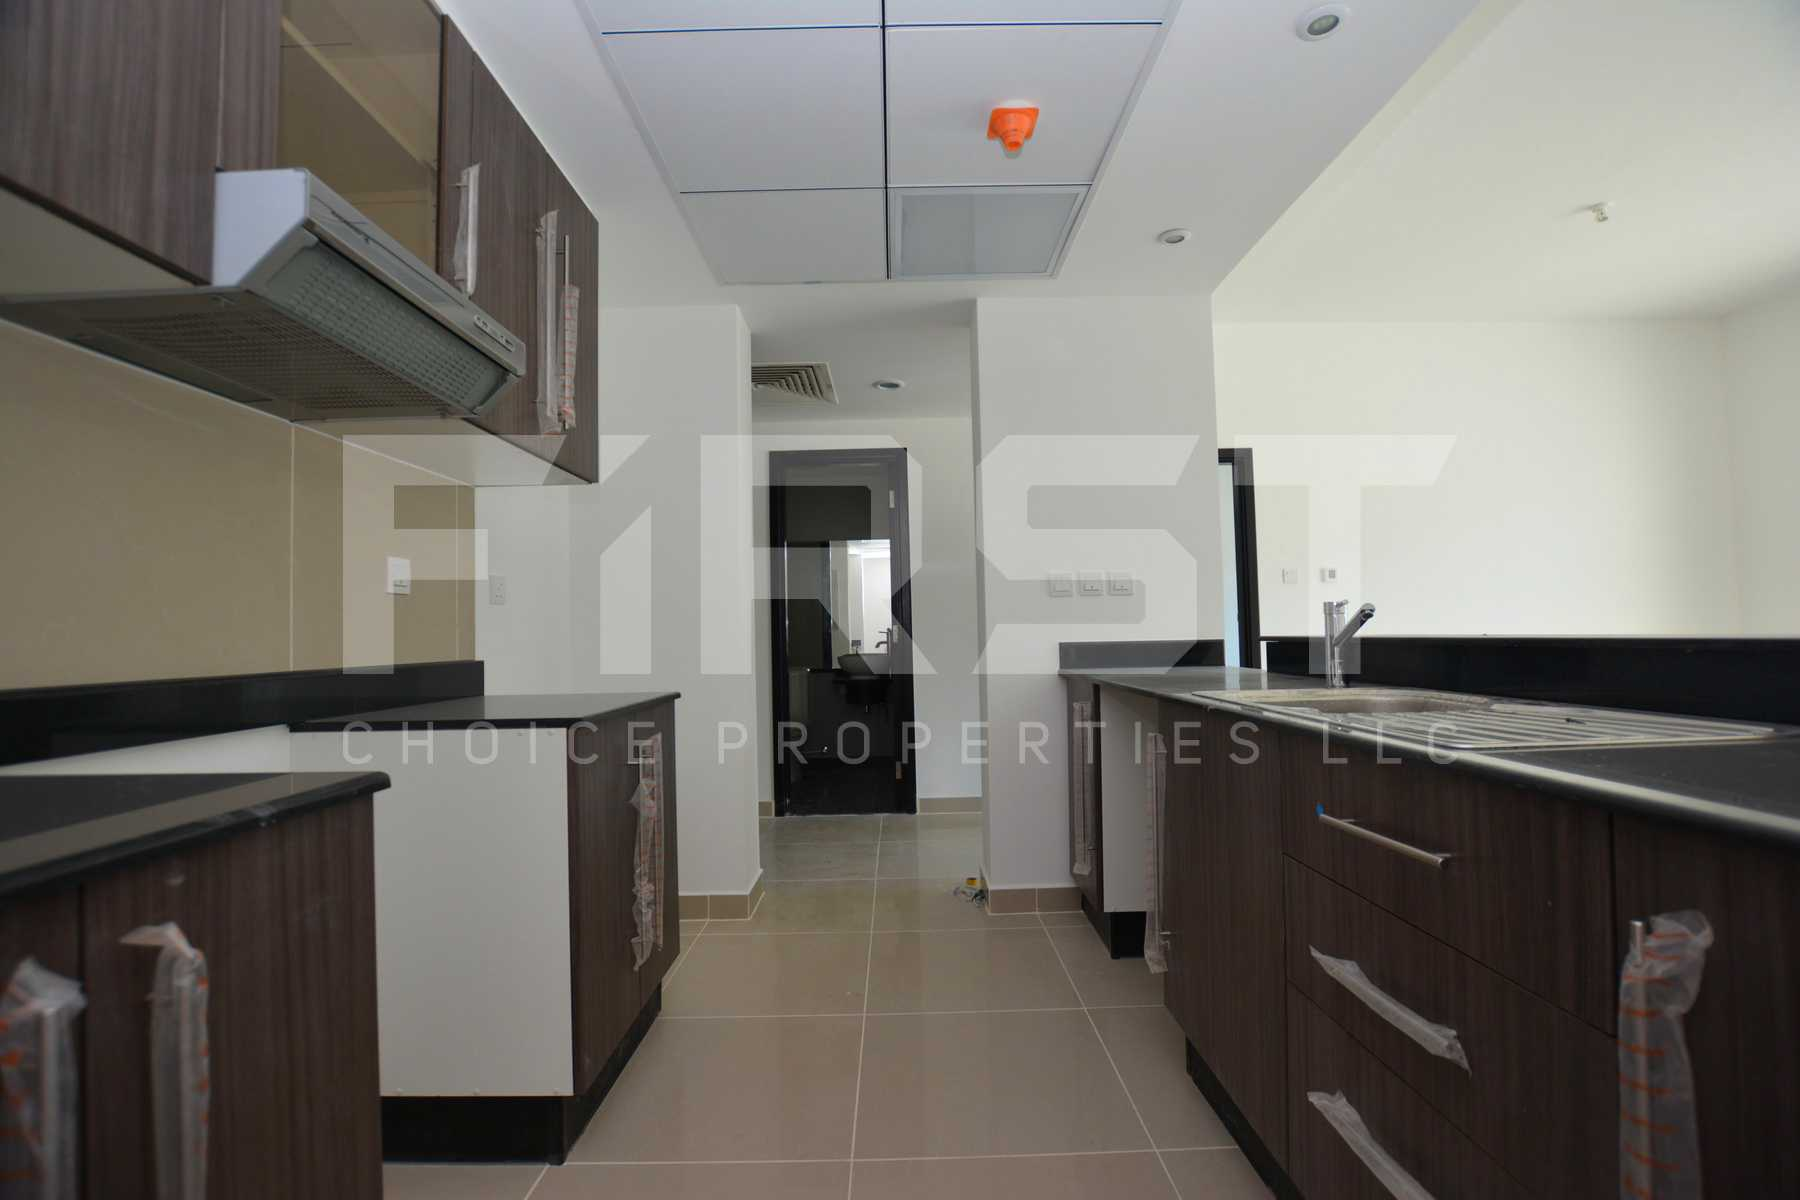 Internal Photo of 1 Bedroom Apartment Type A in Al Reef Downtown Al Reef Abu Dhabi UAE 74 sq.m 796 sq.ft (15).jpg